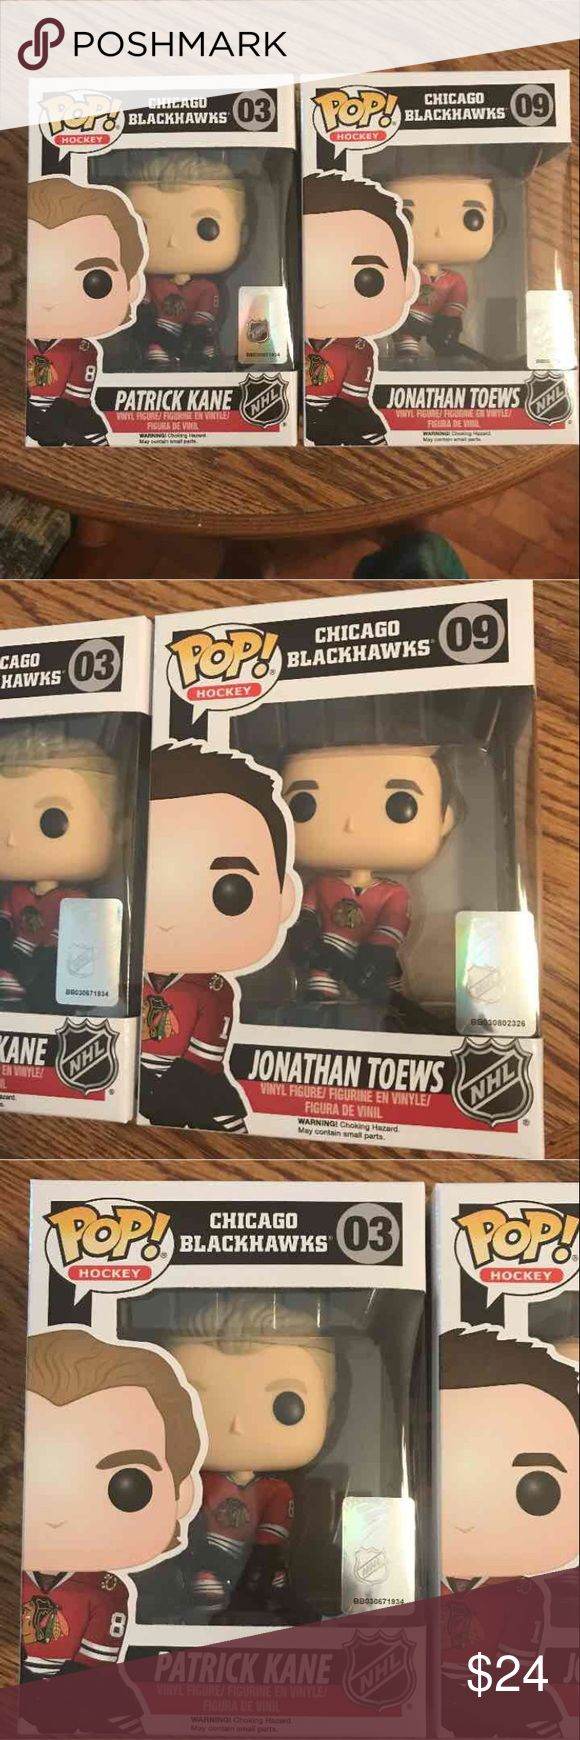 The Chicago Blackhawks Funko Pops X 2 (PlzRead BRAND NEW IN BOX*NO TRADES*PRICE IS FIRM*APPROPRIATE COMMENTS ONLY* May bubbling or slight flaws Of The package from the manufacturer,overall great condition #NHL Hockey Patrick Kane  Jonathan Toews Accessories